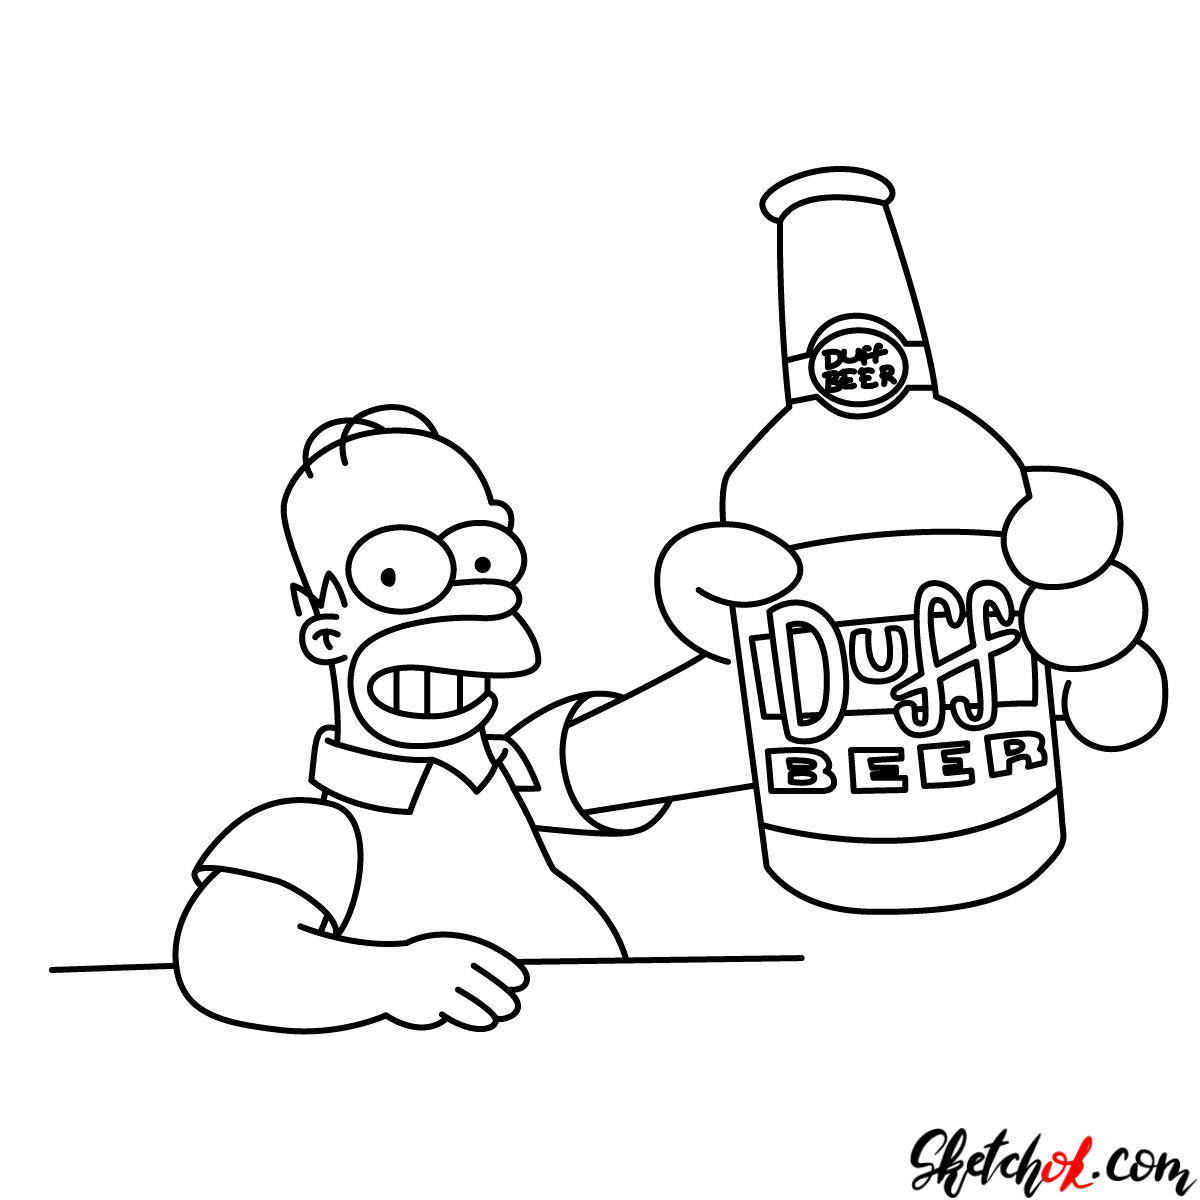 How to draw Homer with a Duff beer bottle - step 11